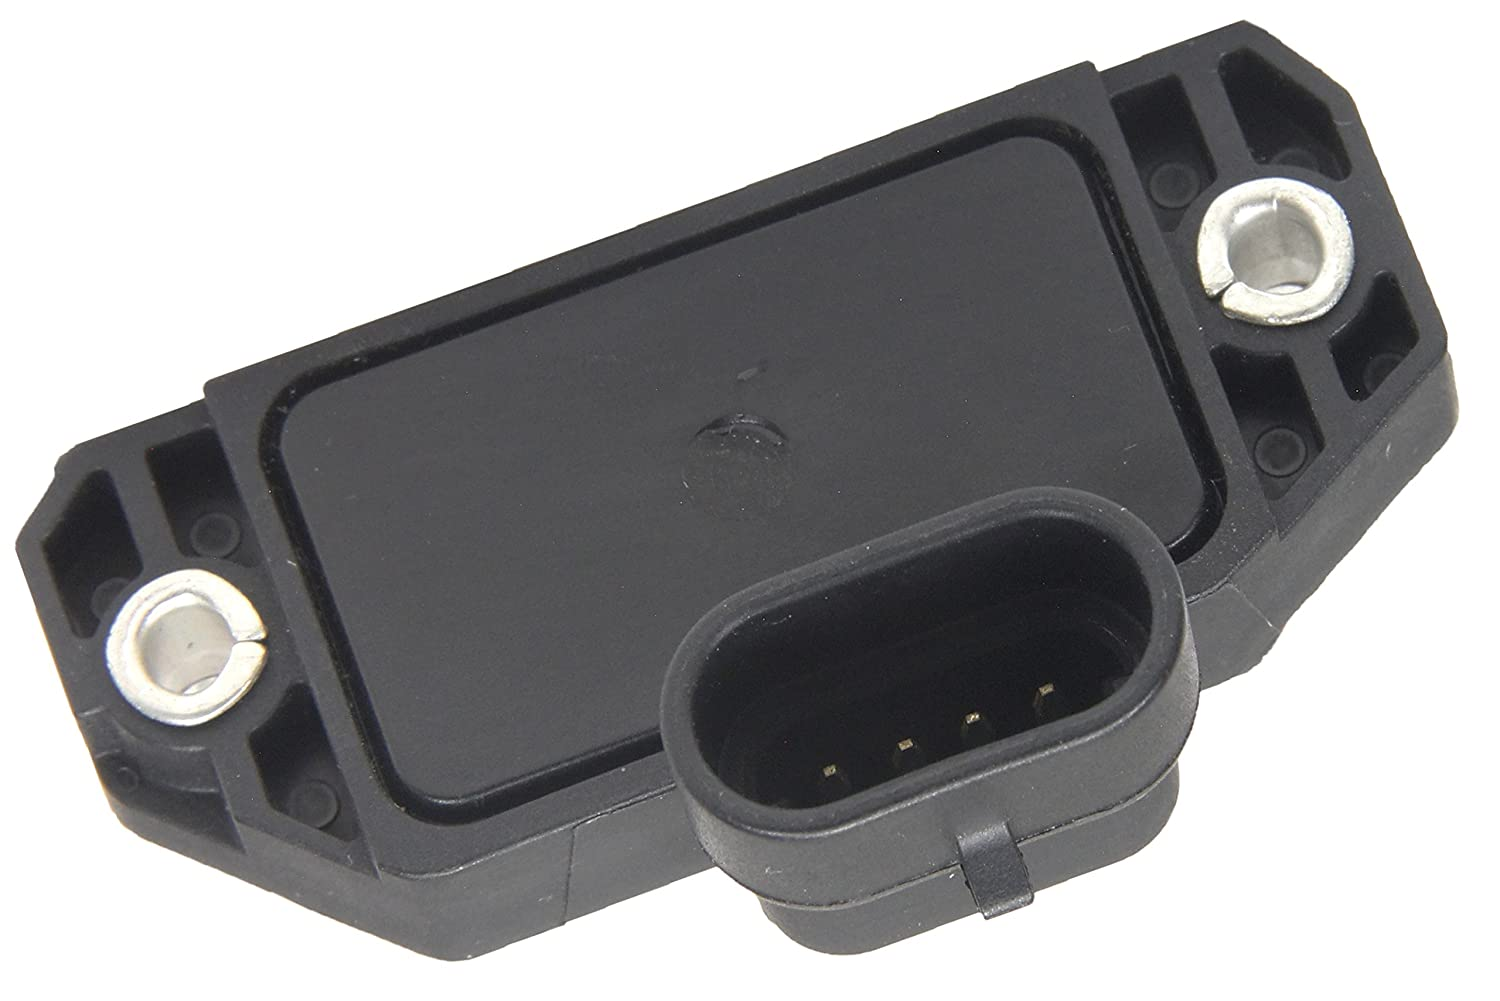 Ignition Control Module for 1994-1997 Pontiac Firebird 1994 1995 Buick Roadmaster Commercial Chasis Fleetwood Chevy Camaro Caprice Corvette Impala 5.7L V8 Compatible with LX-368 DR174